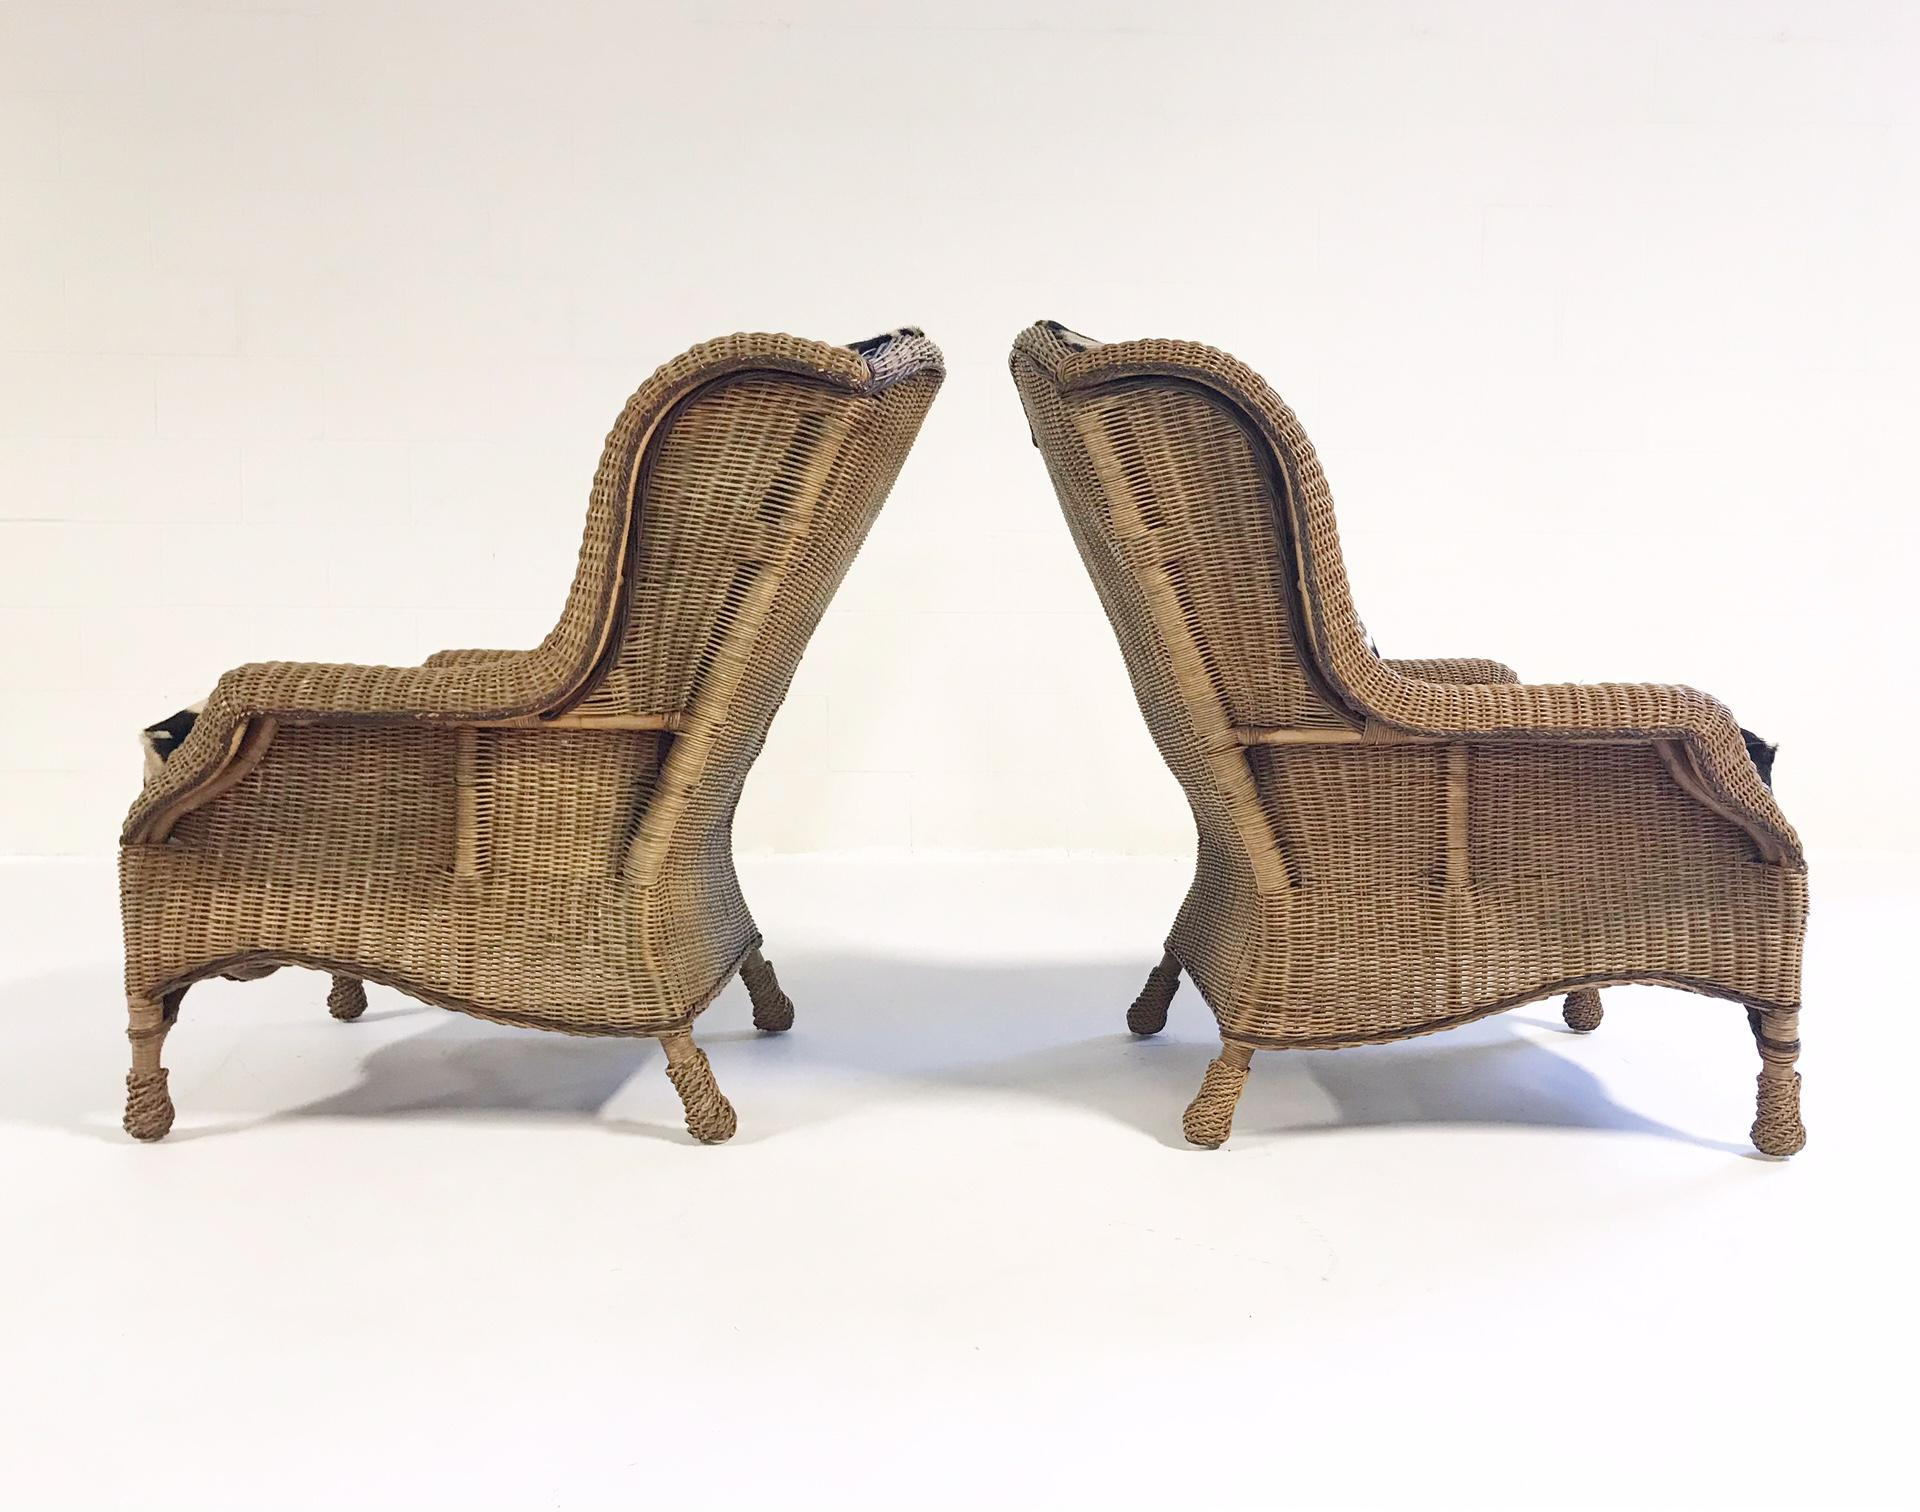 1980s Vintage Ralph Lauren Wicker Wingback Chairs Restored In Zebra Hide    Pair For Sale